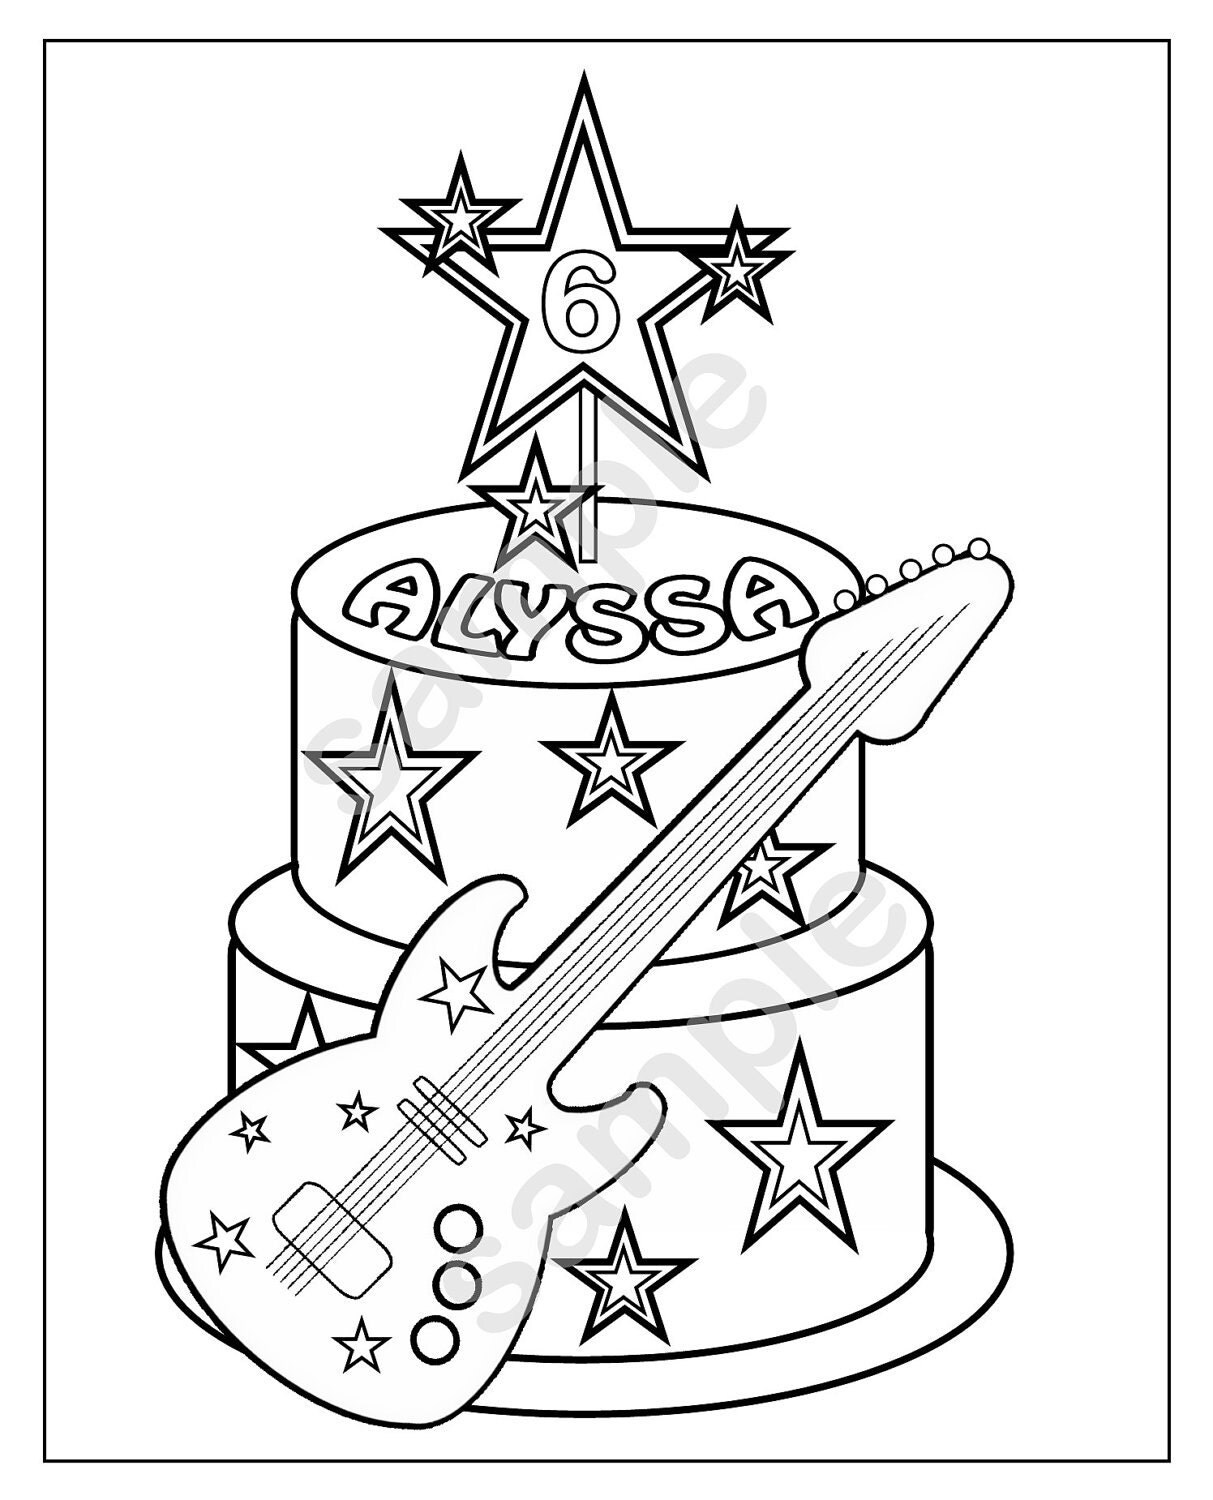 personalized coloring pages - photo#16